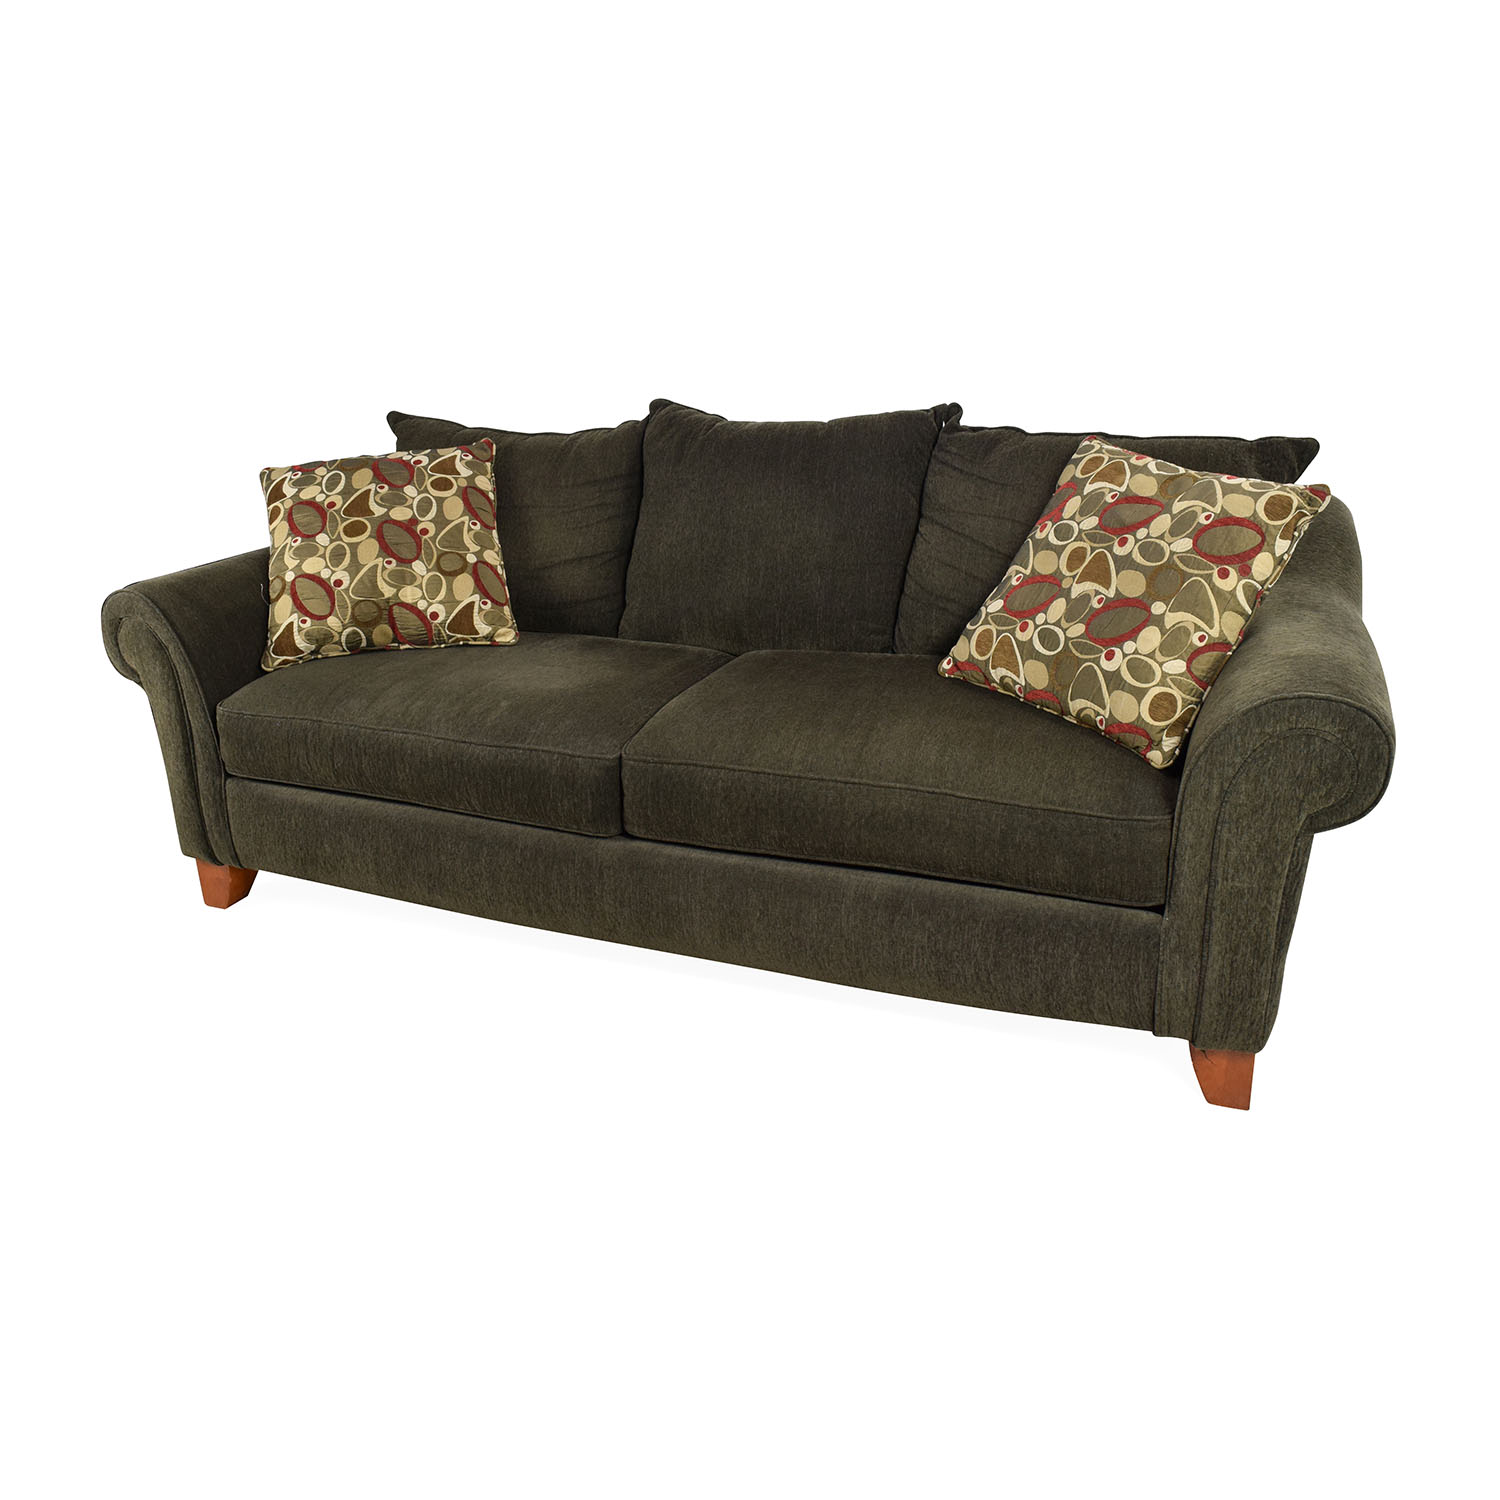 Sofas Raymour And Flanigan Sofas Sofa Couches Leather